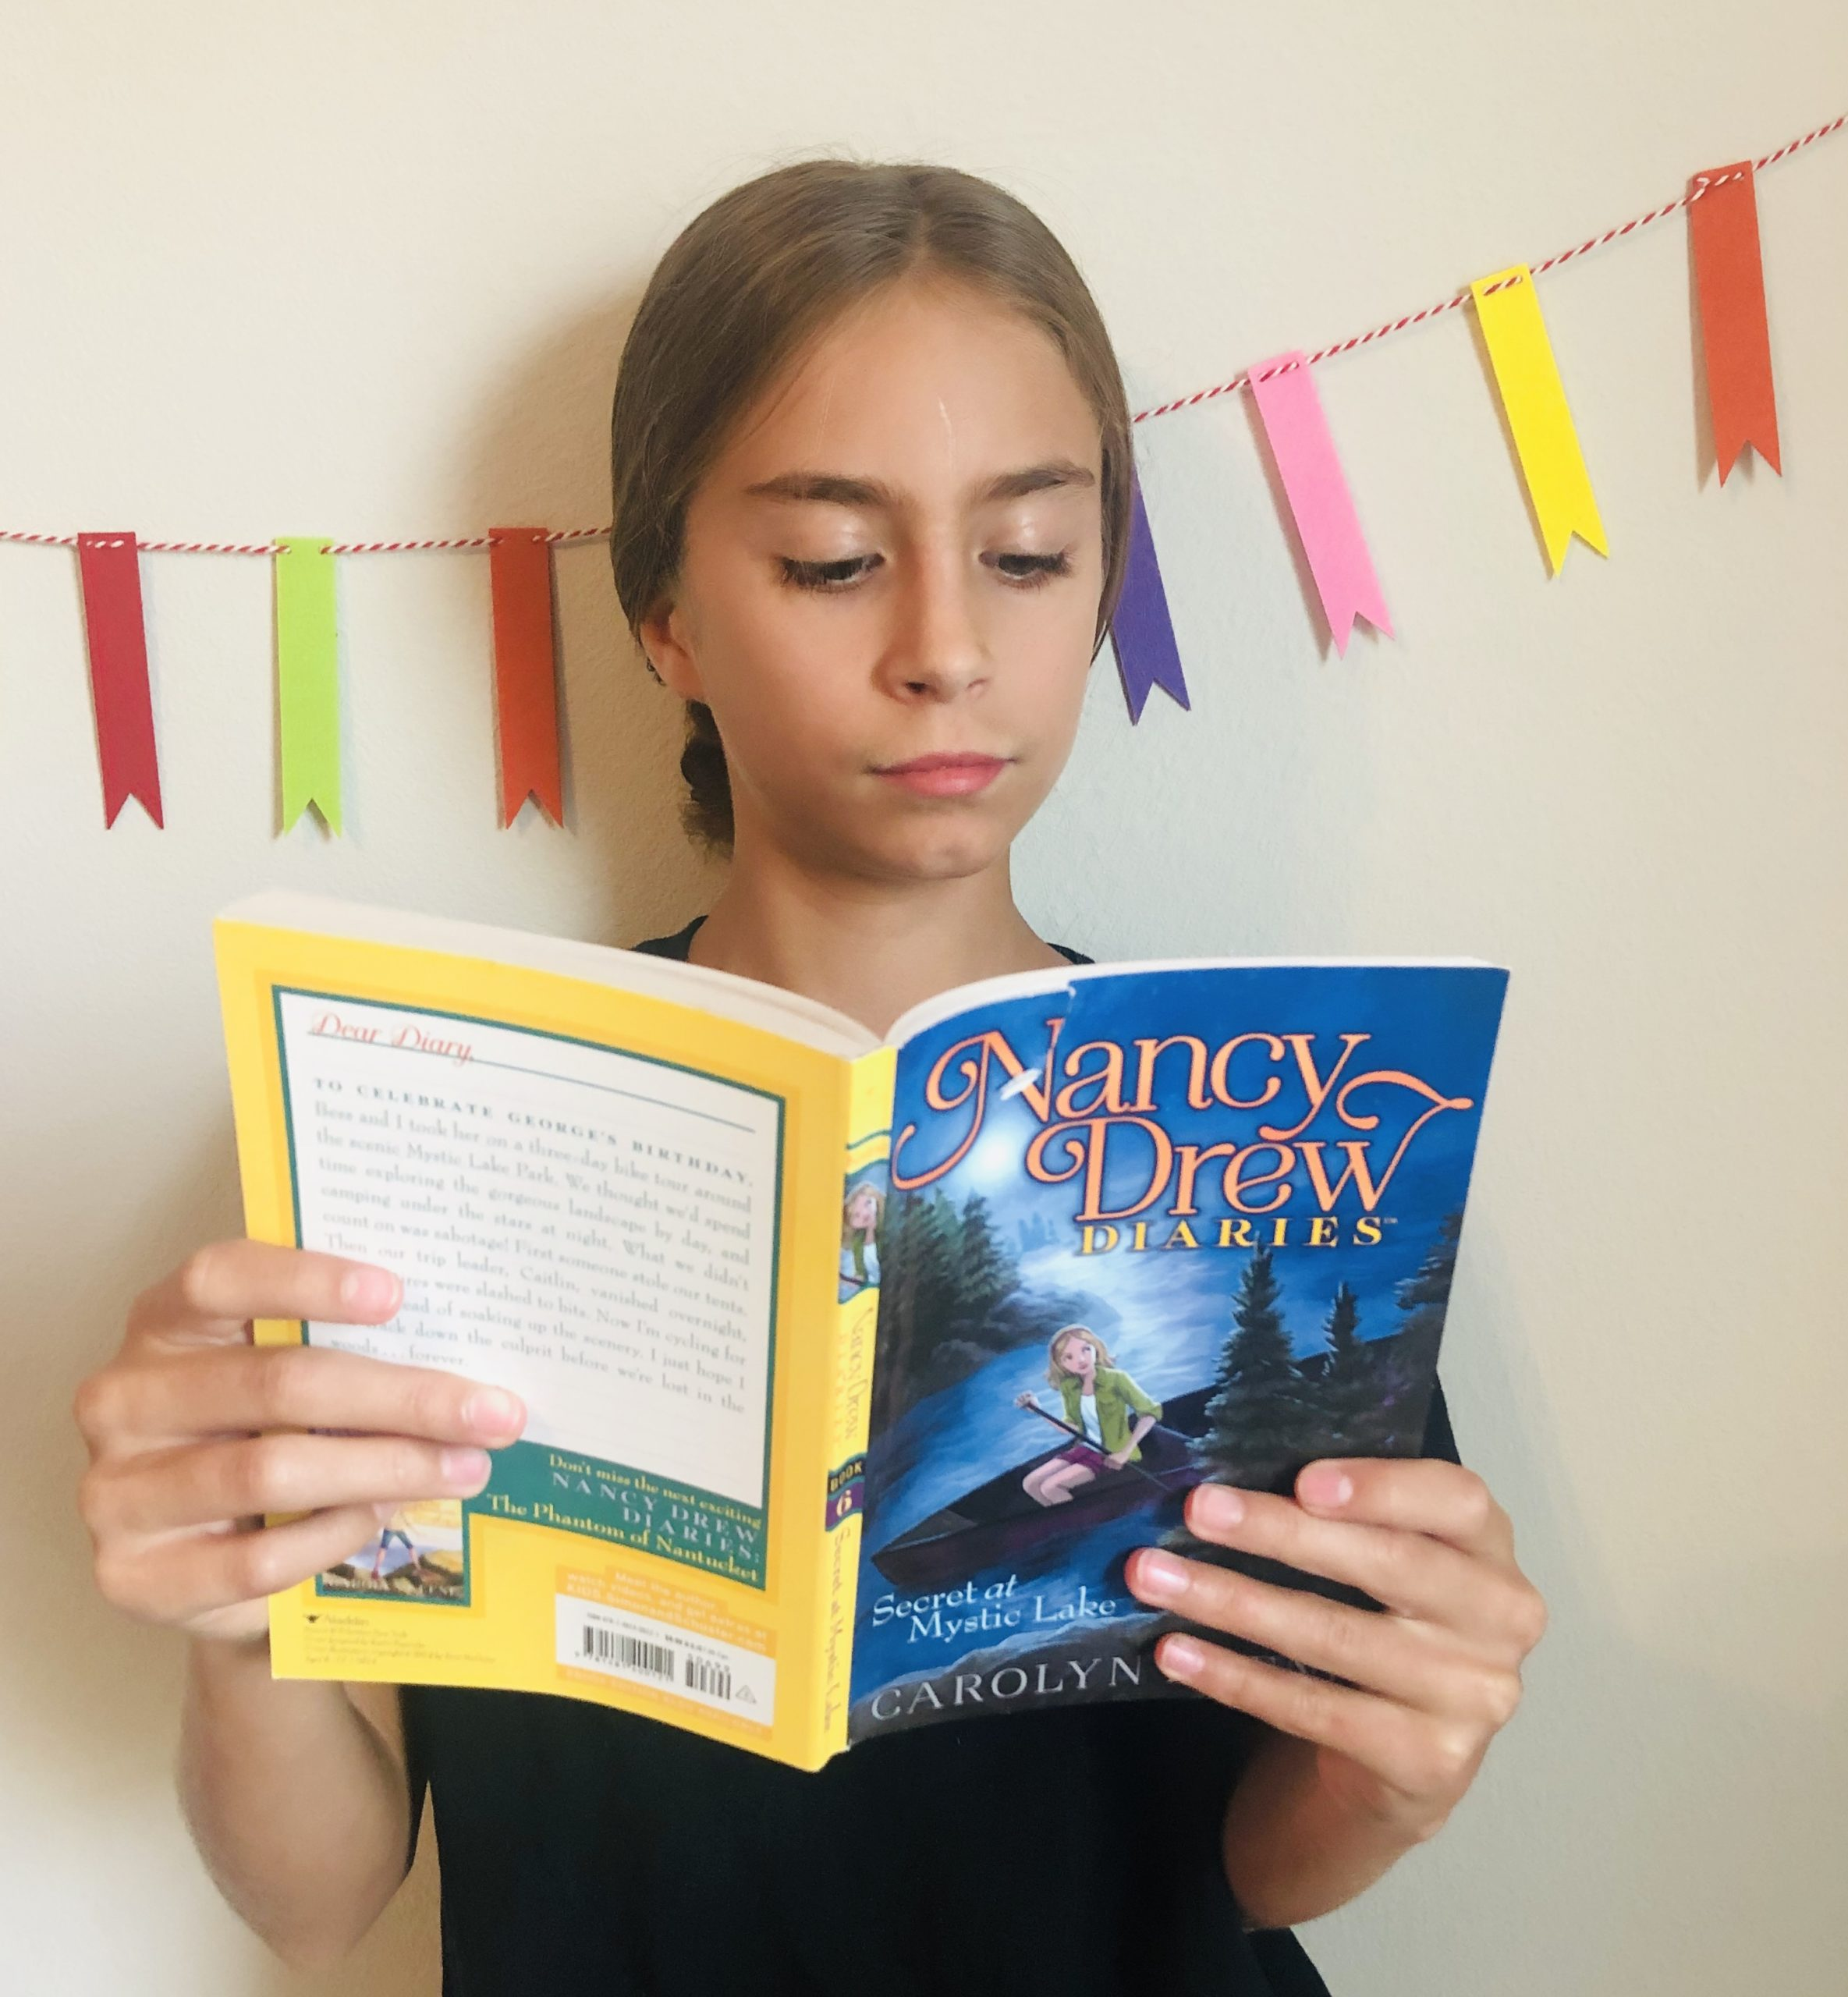 Book Review from the Nancy Drew Diaries called Secret at Mystic Lake by Carolyn Keene.